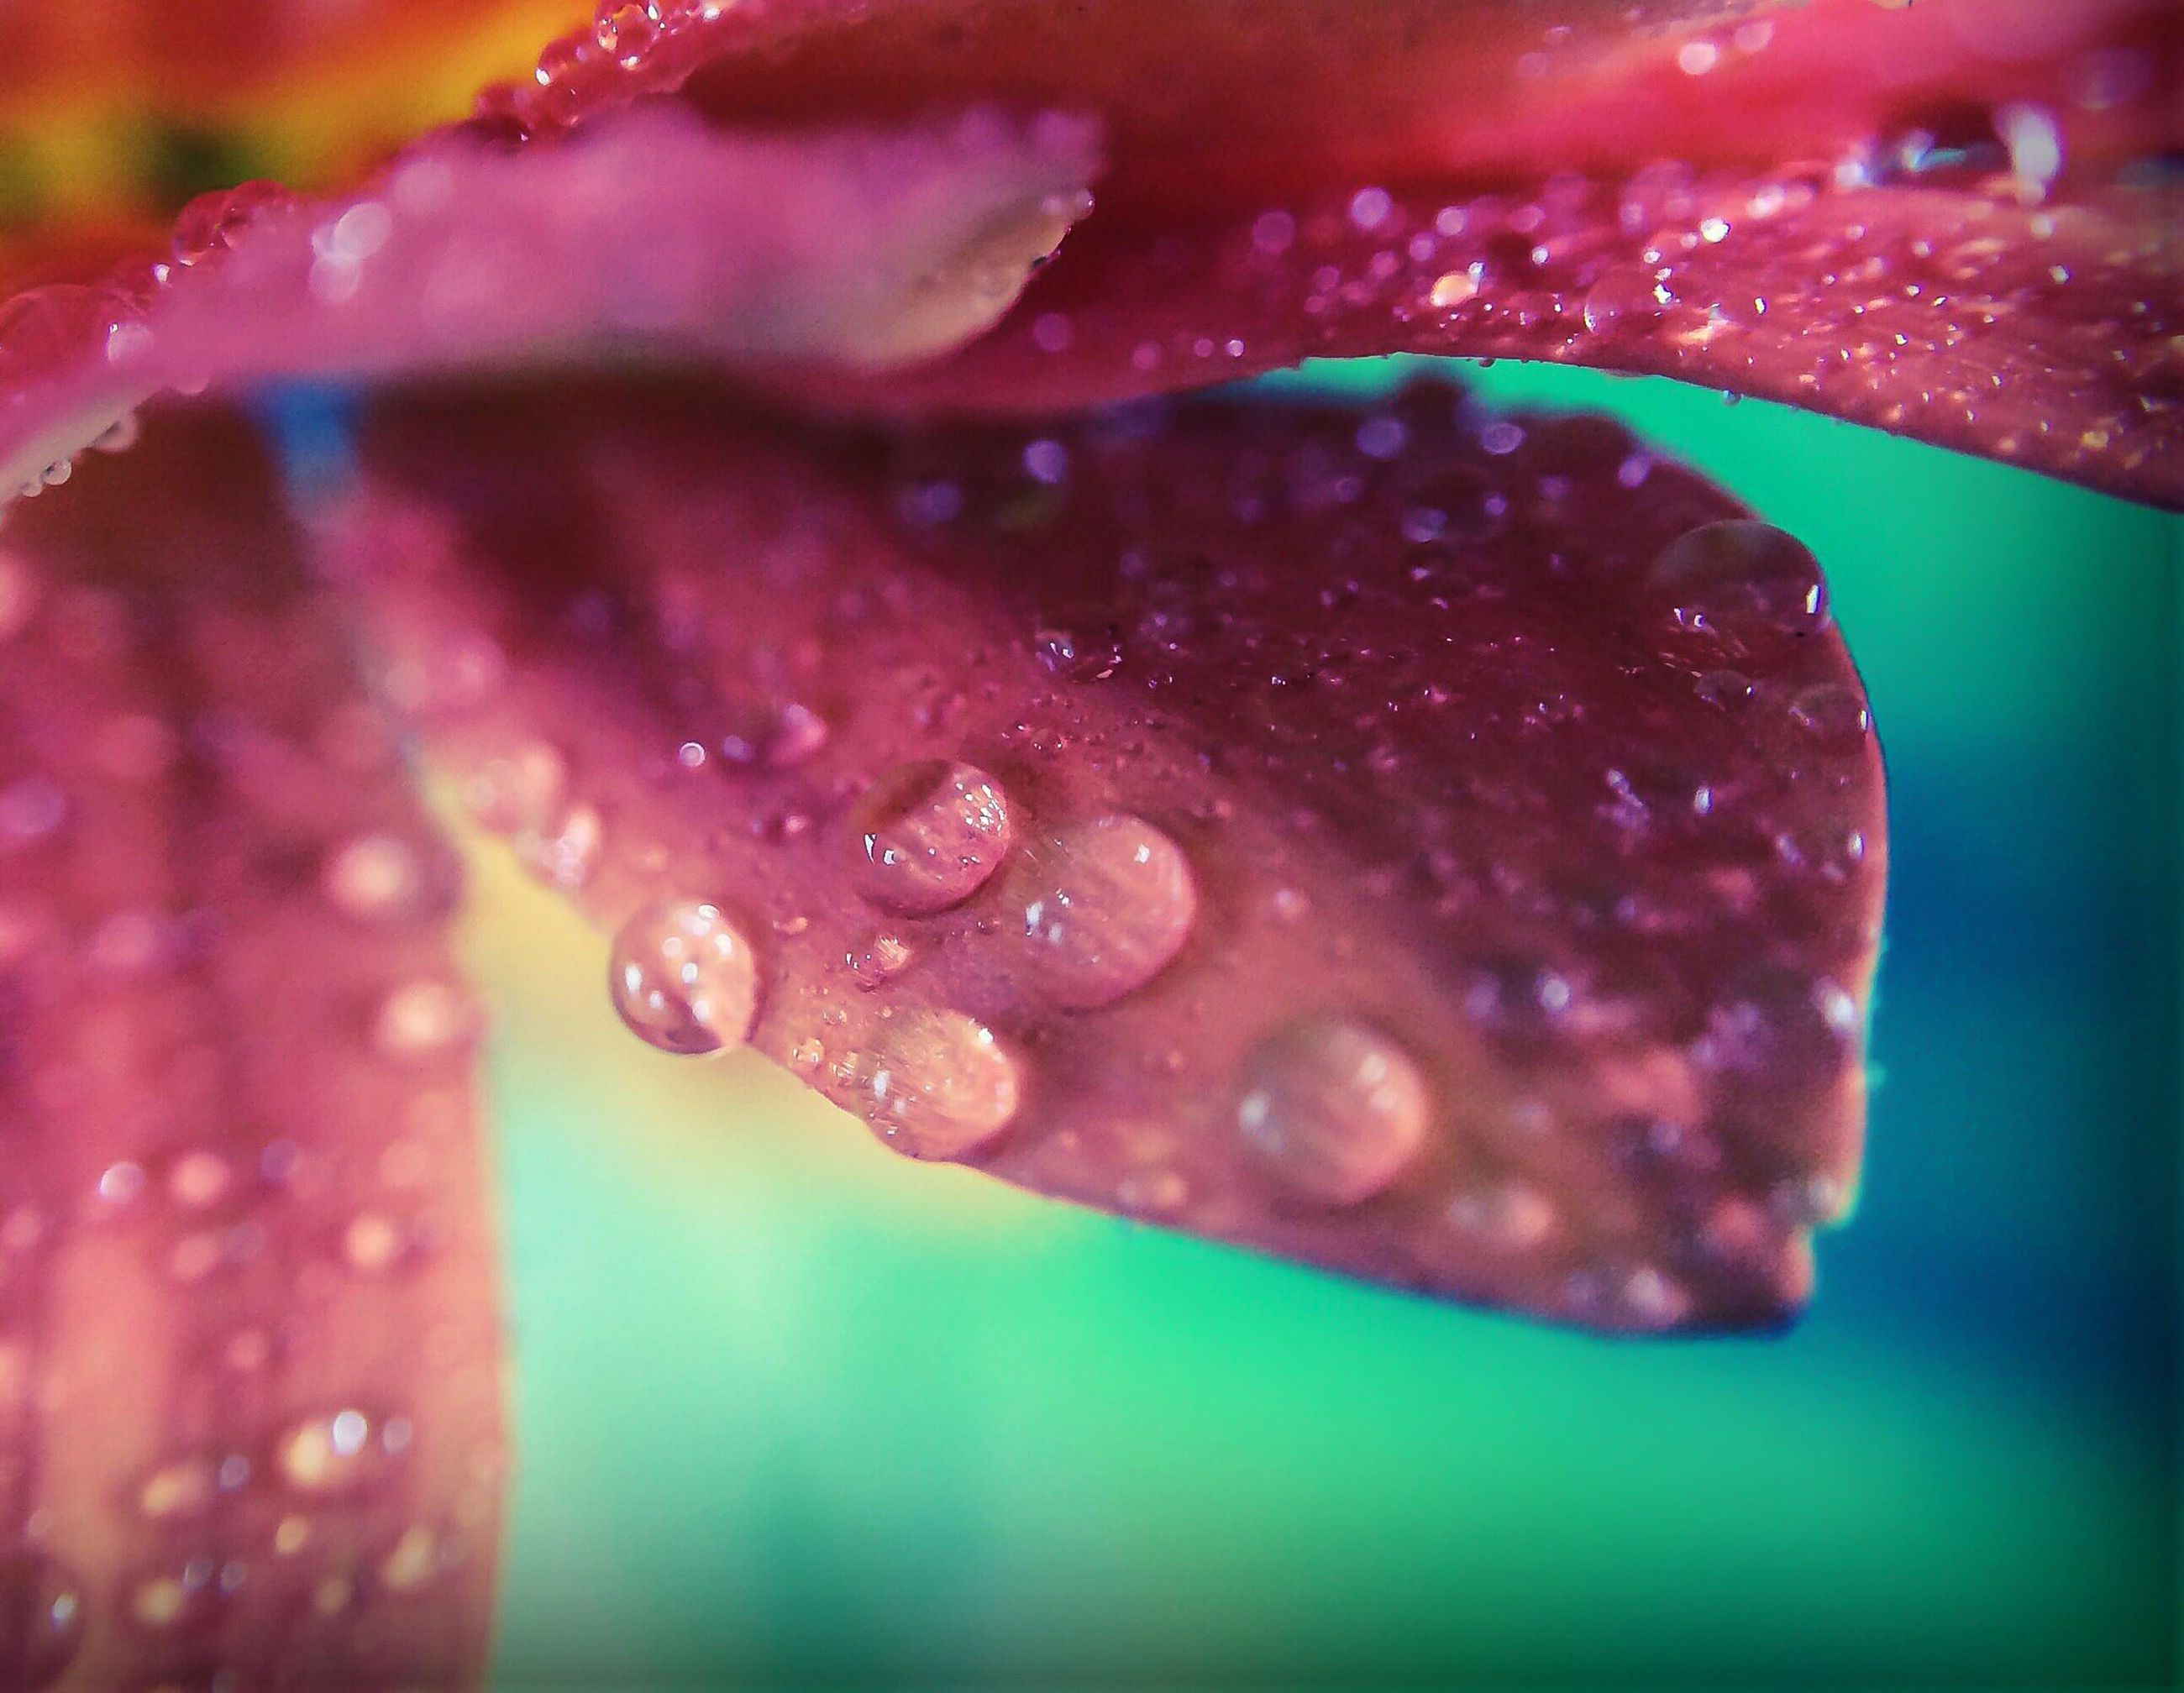 freshness, drop, water, close-up, wet, fragility, flower, petal, dew, beauty in nature, red, flower head, selective focus, nature, single flower, droplet, growth, purity, water drop, macro